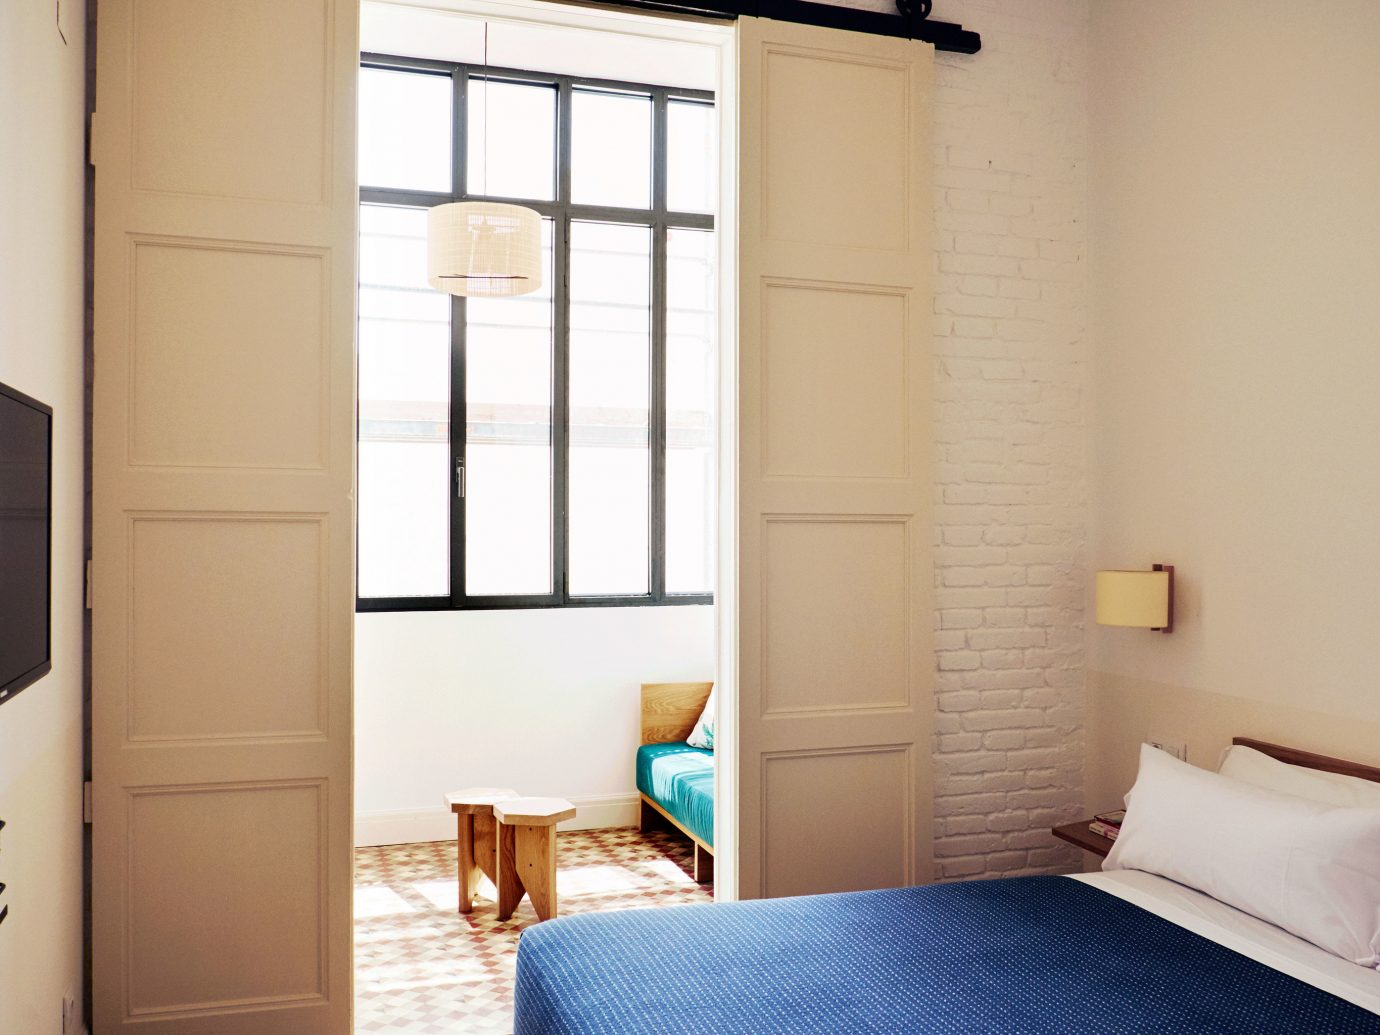 Hotels wall indoor room bed property interior design cottage Bedroom home floor real estate apartment window covering